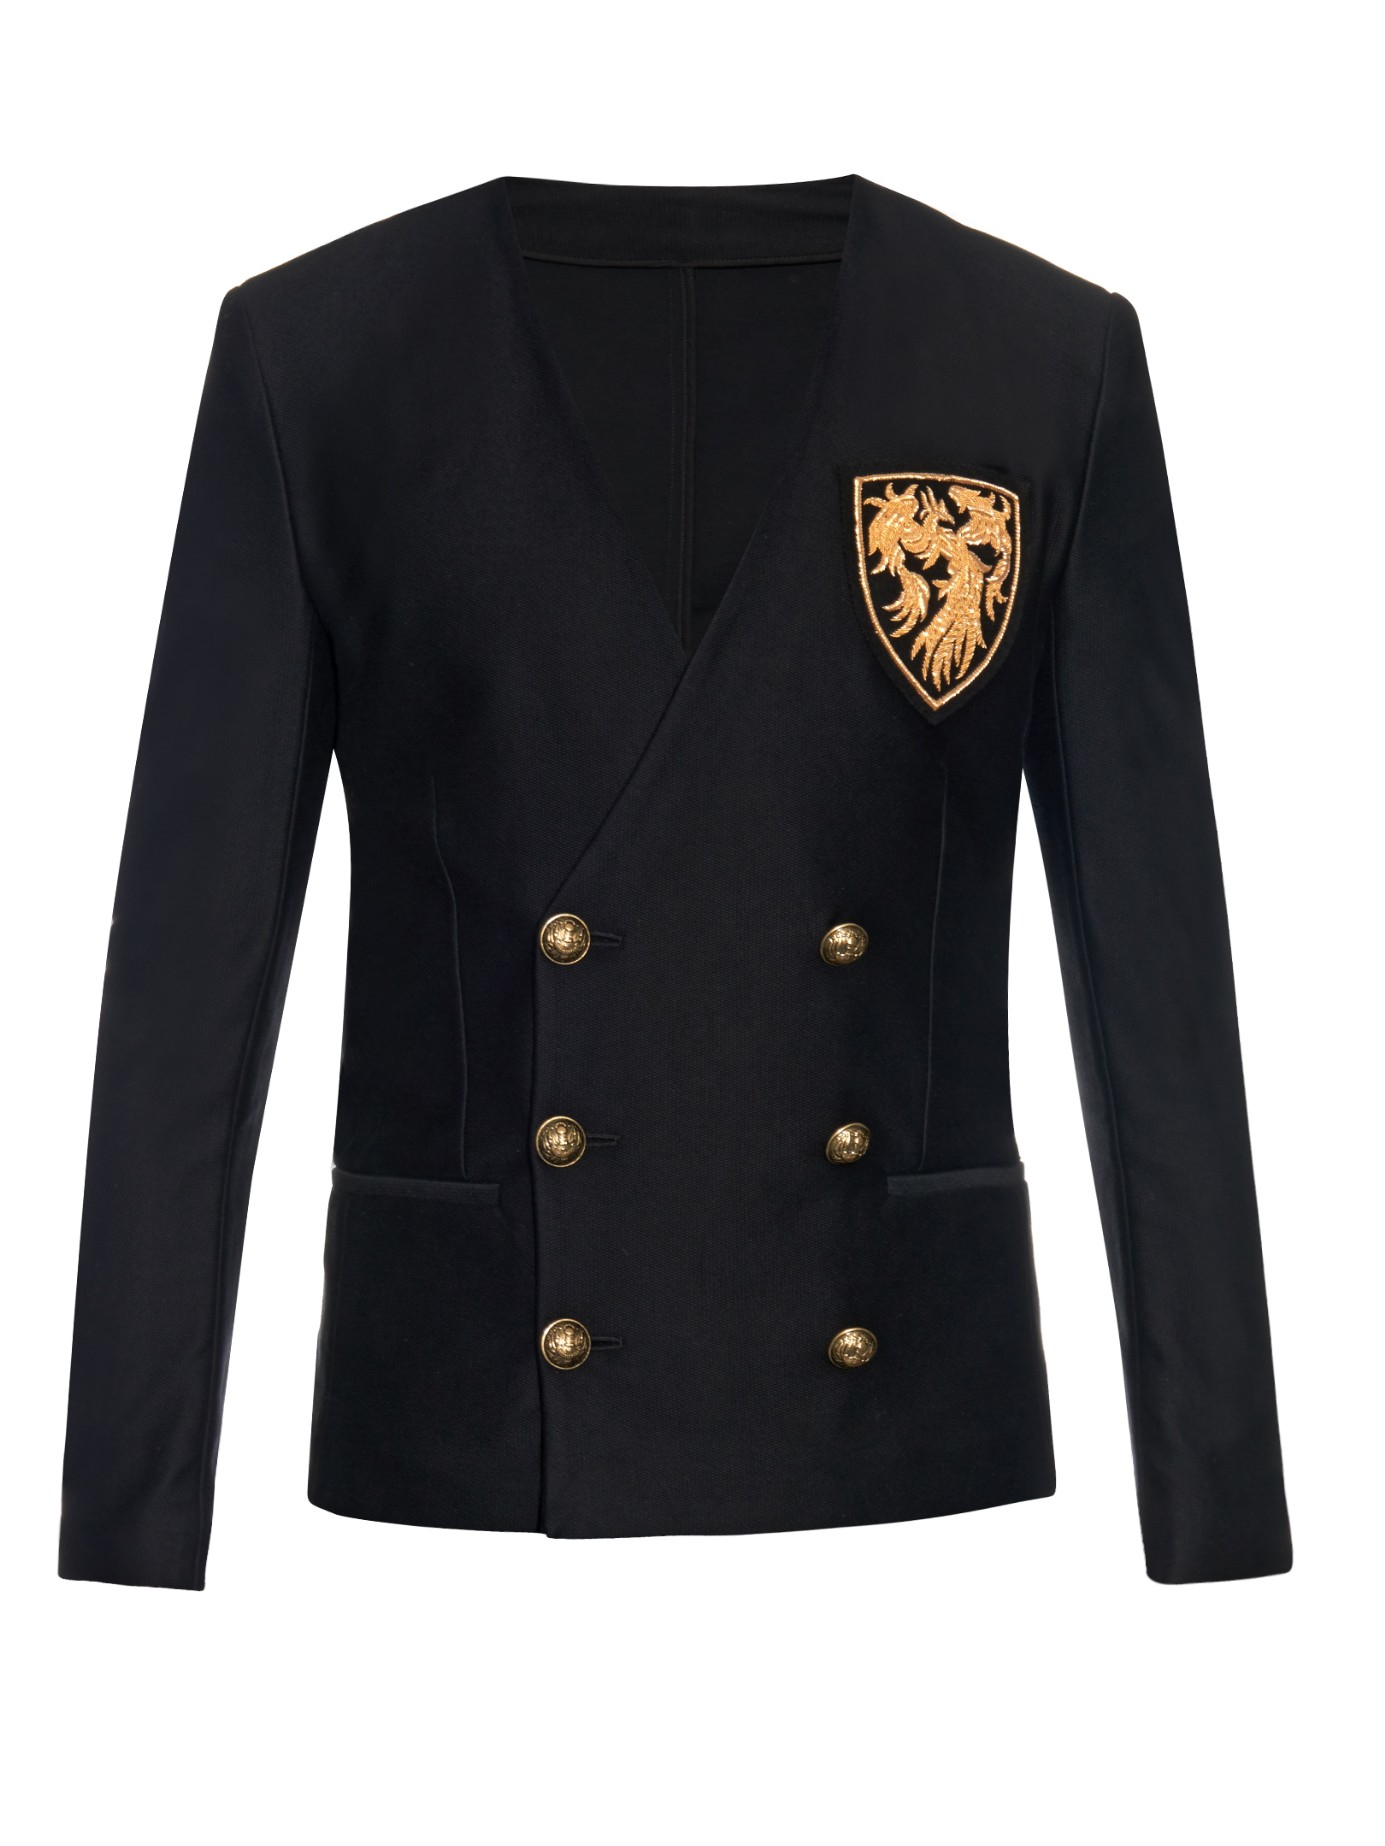 Balmain Sizing | White Blazer Gold Buttons | Balmain Double Breasted Blazer